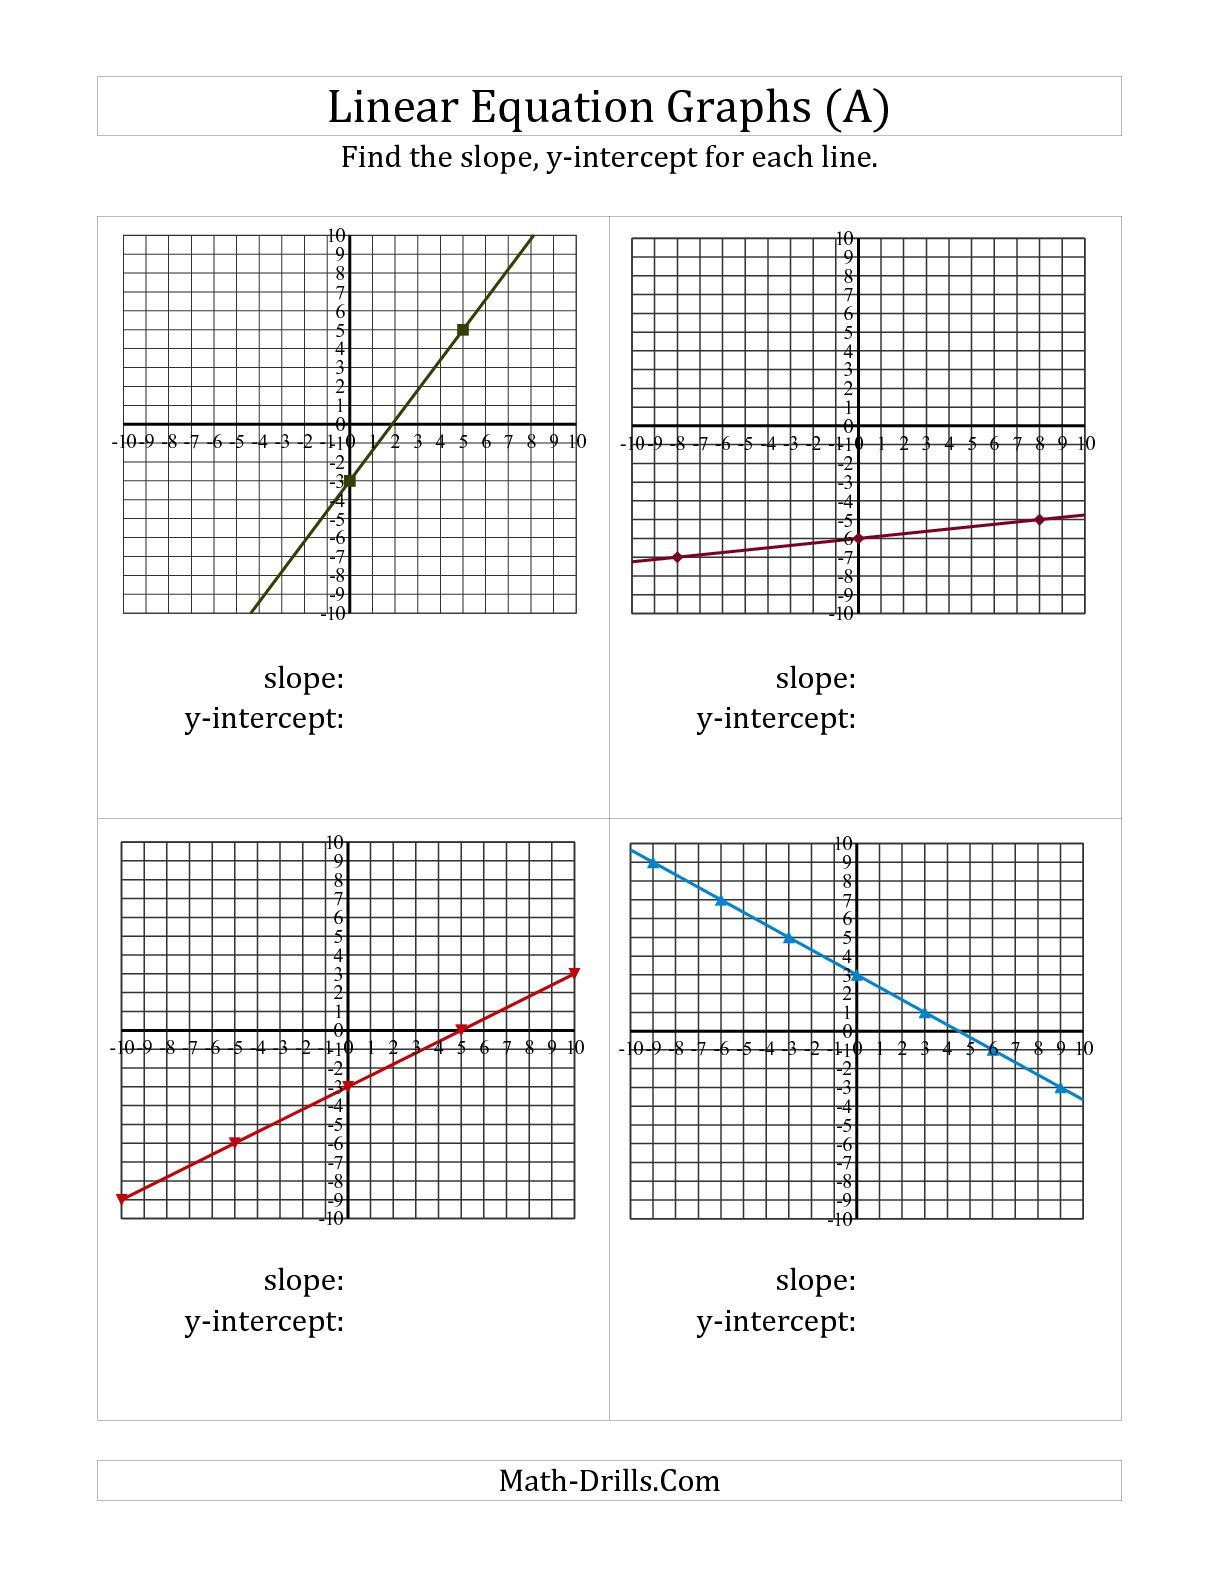 Writing Equations From Graphs Worksheet the Finding Slope and Y Intercept From A Linear Equation